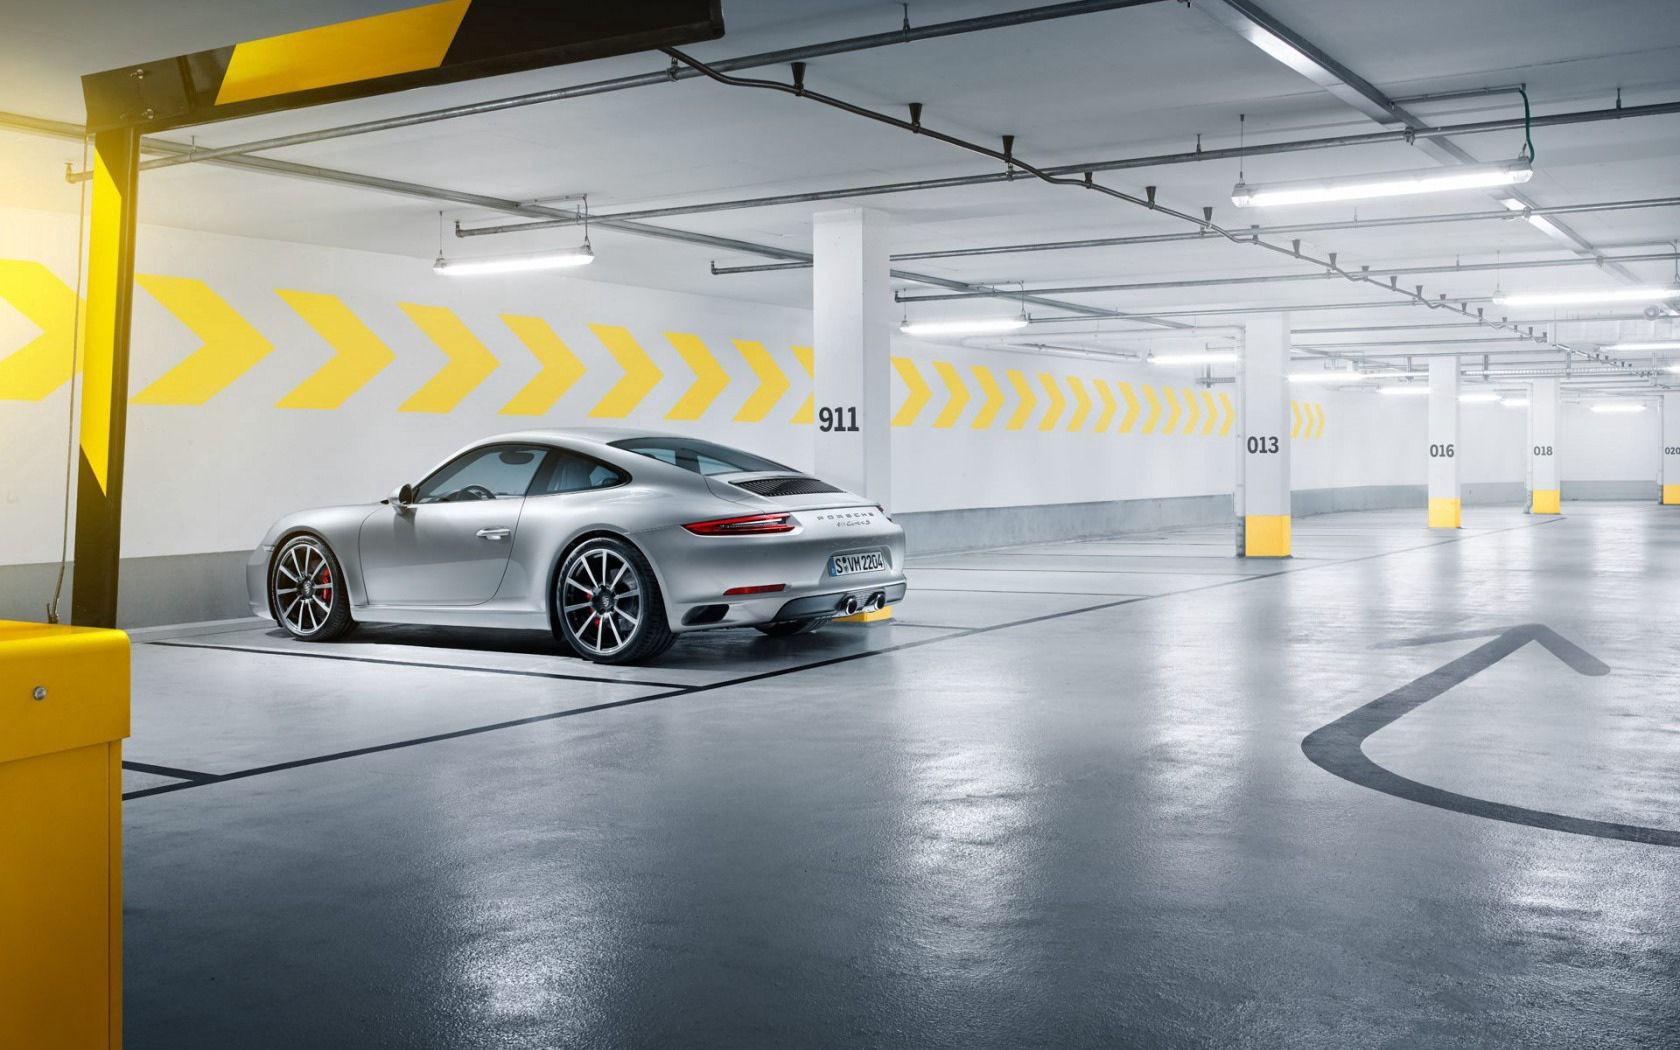 133666 download wallpaper Porsche, Cars, Side View, Silver, 911, Silvery, Carrera S screensavers and pictures for free